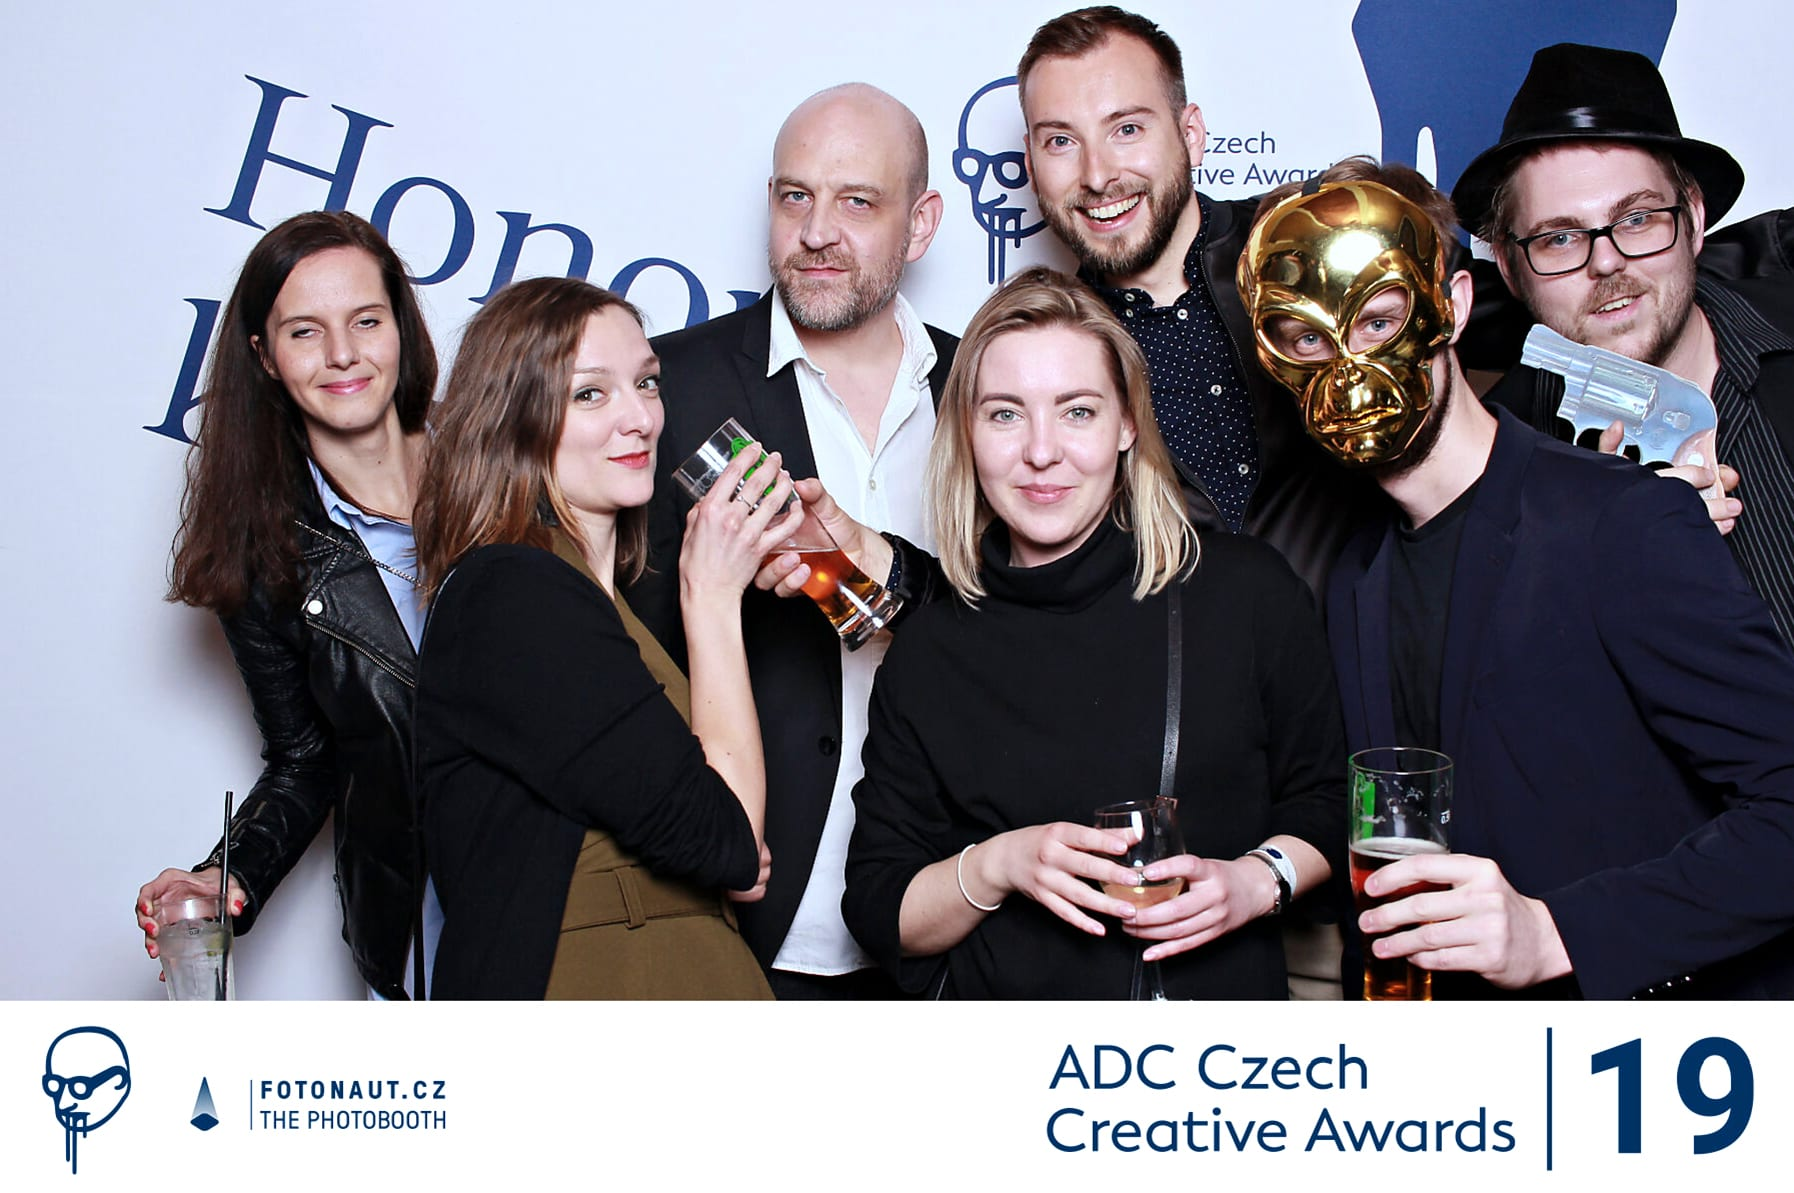 fotokoutek-adc-awards-11-4-2019-594043